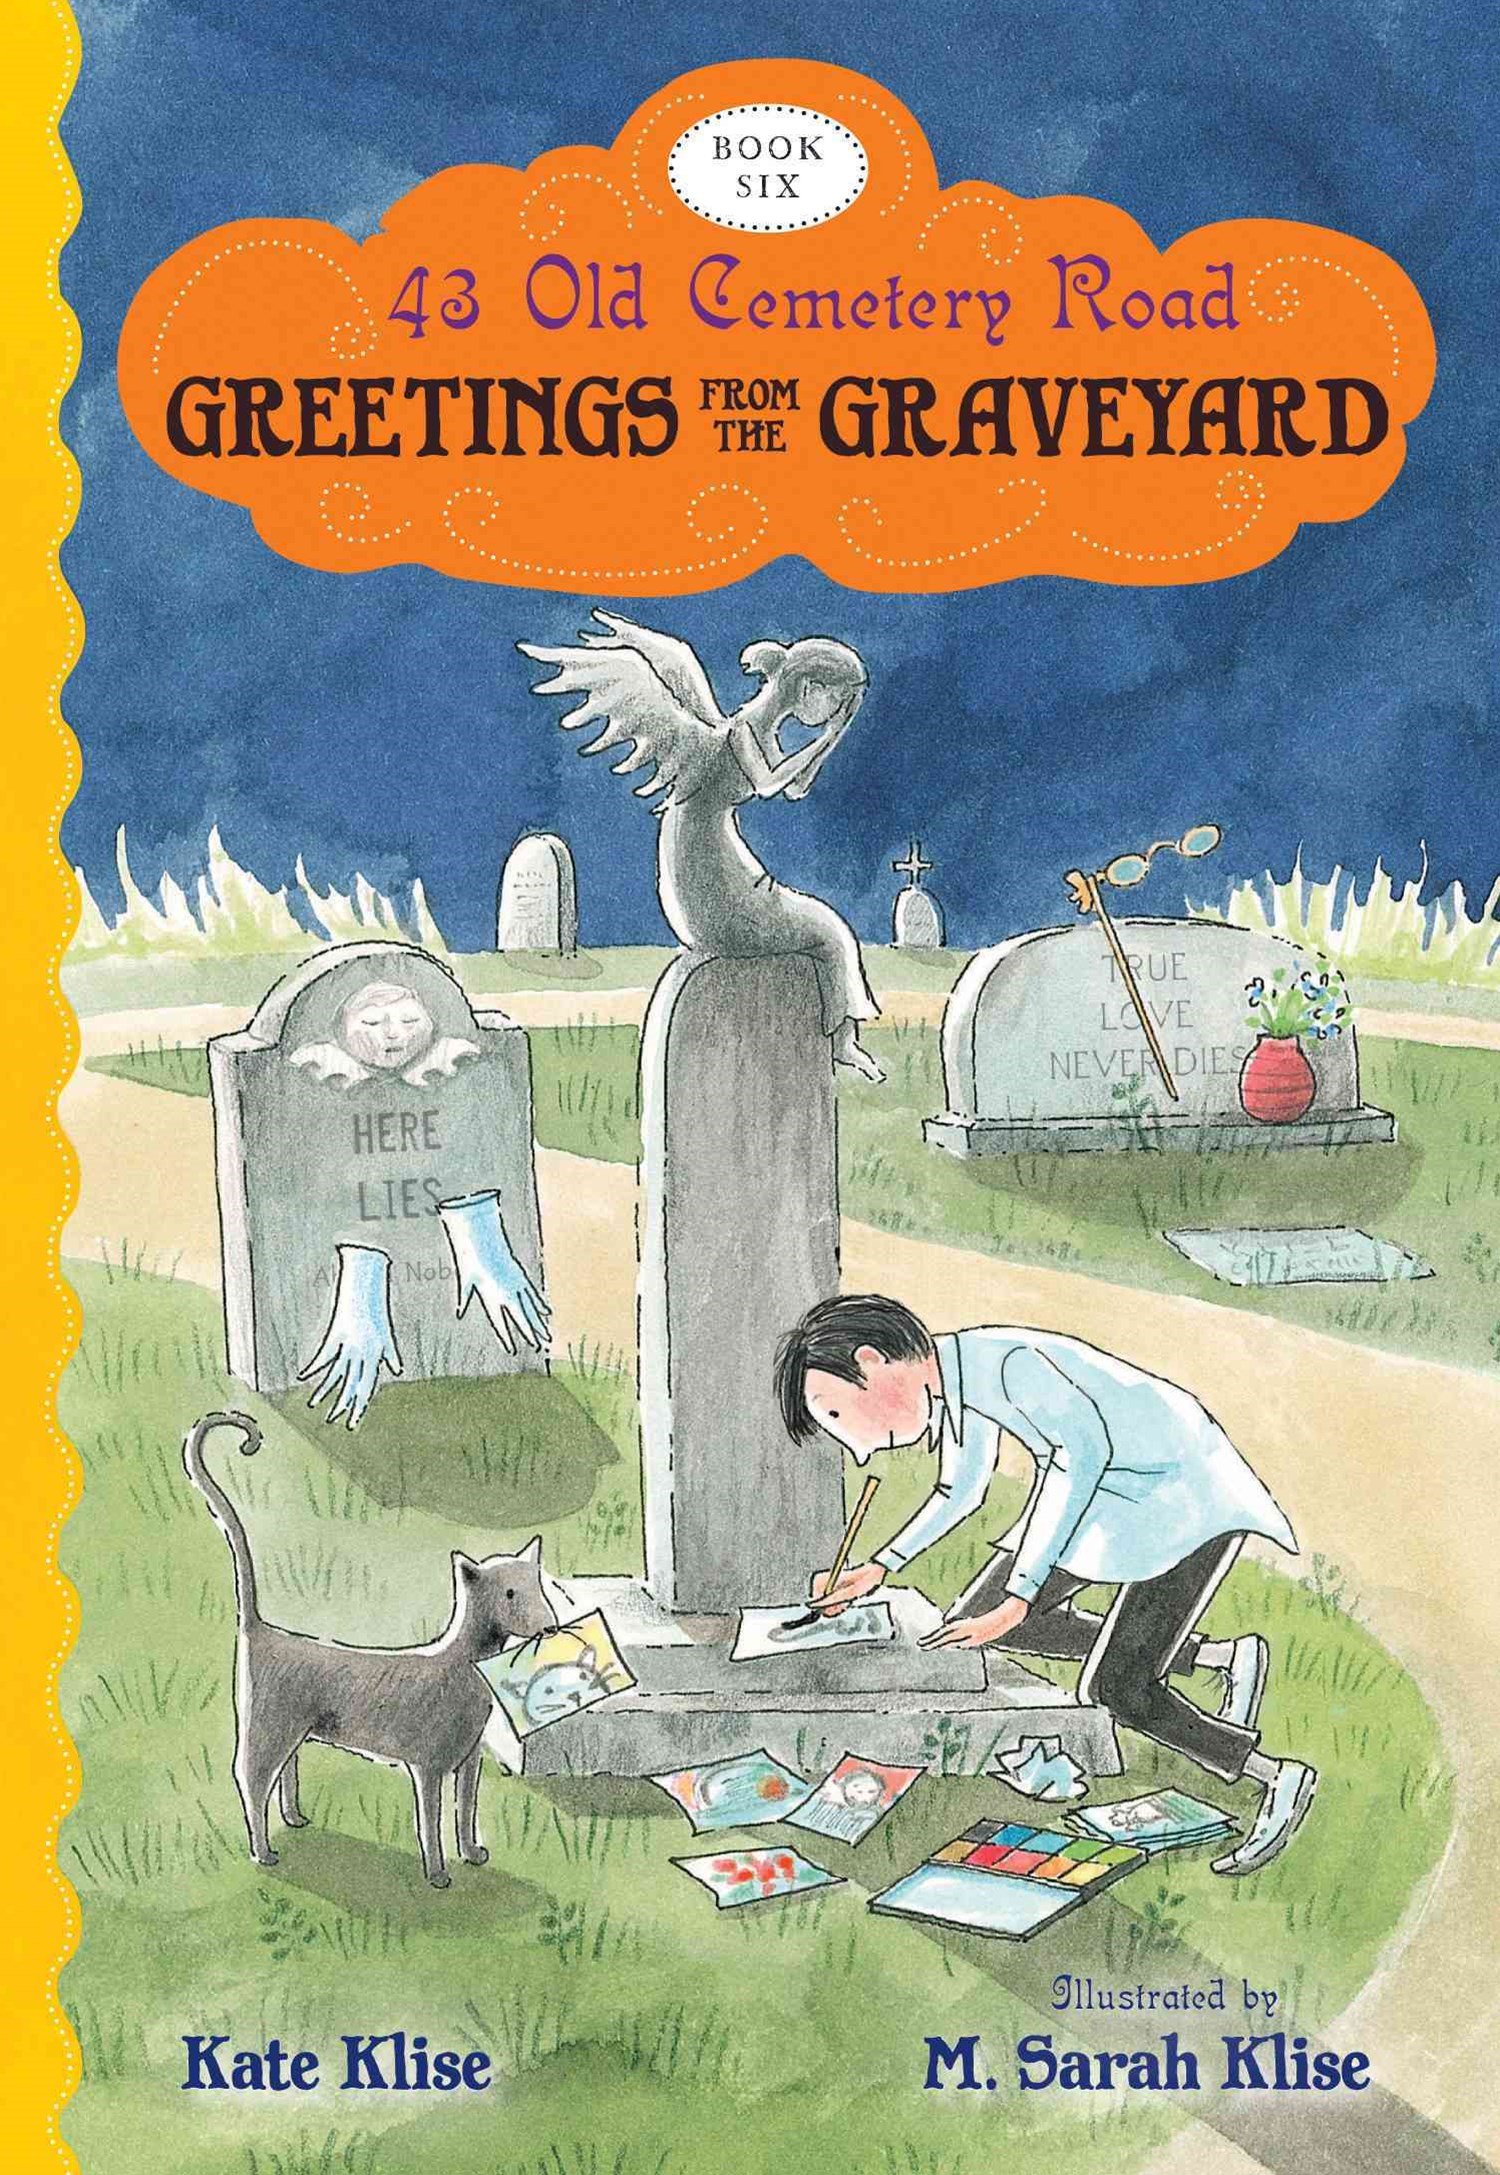 Greetings from the Graveyard: 43 Old Cemetery Road, Bk 6